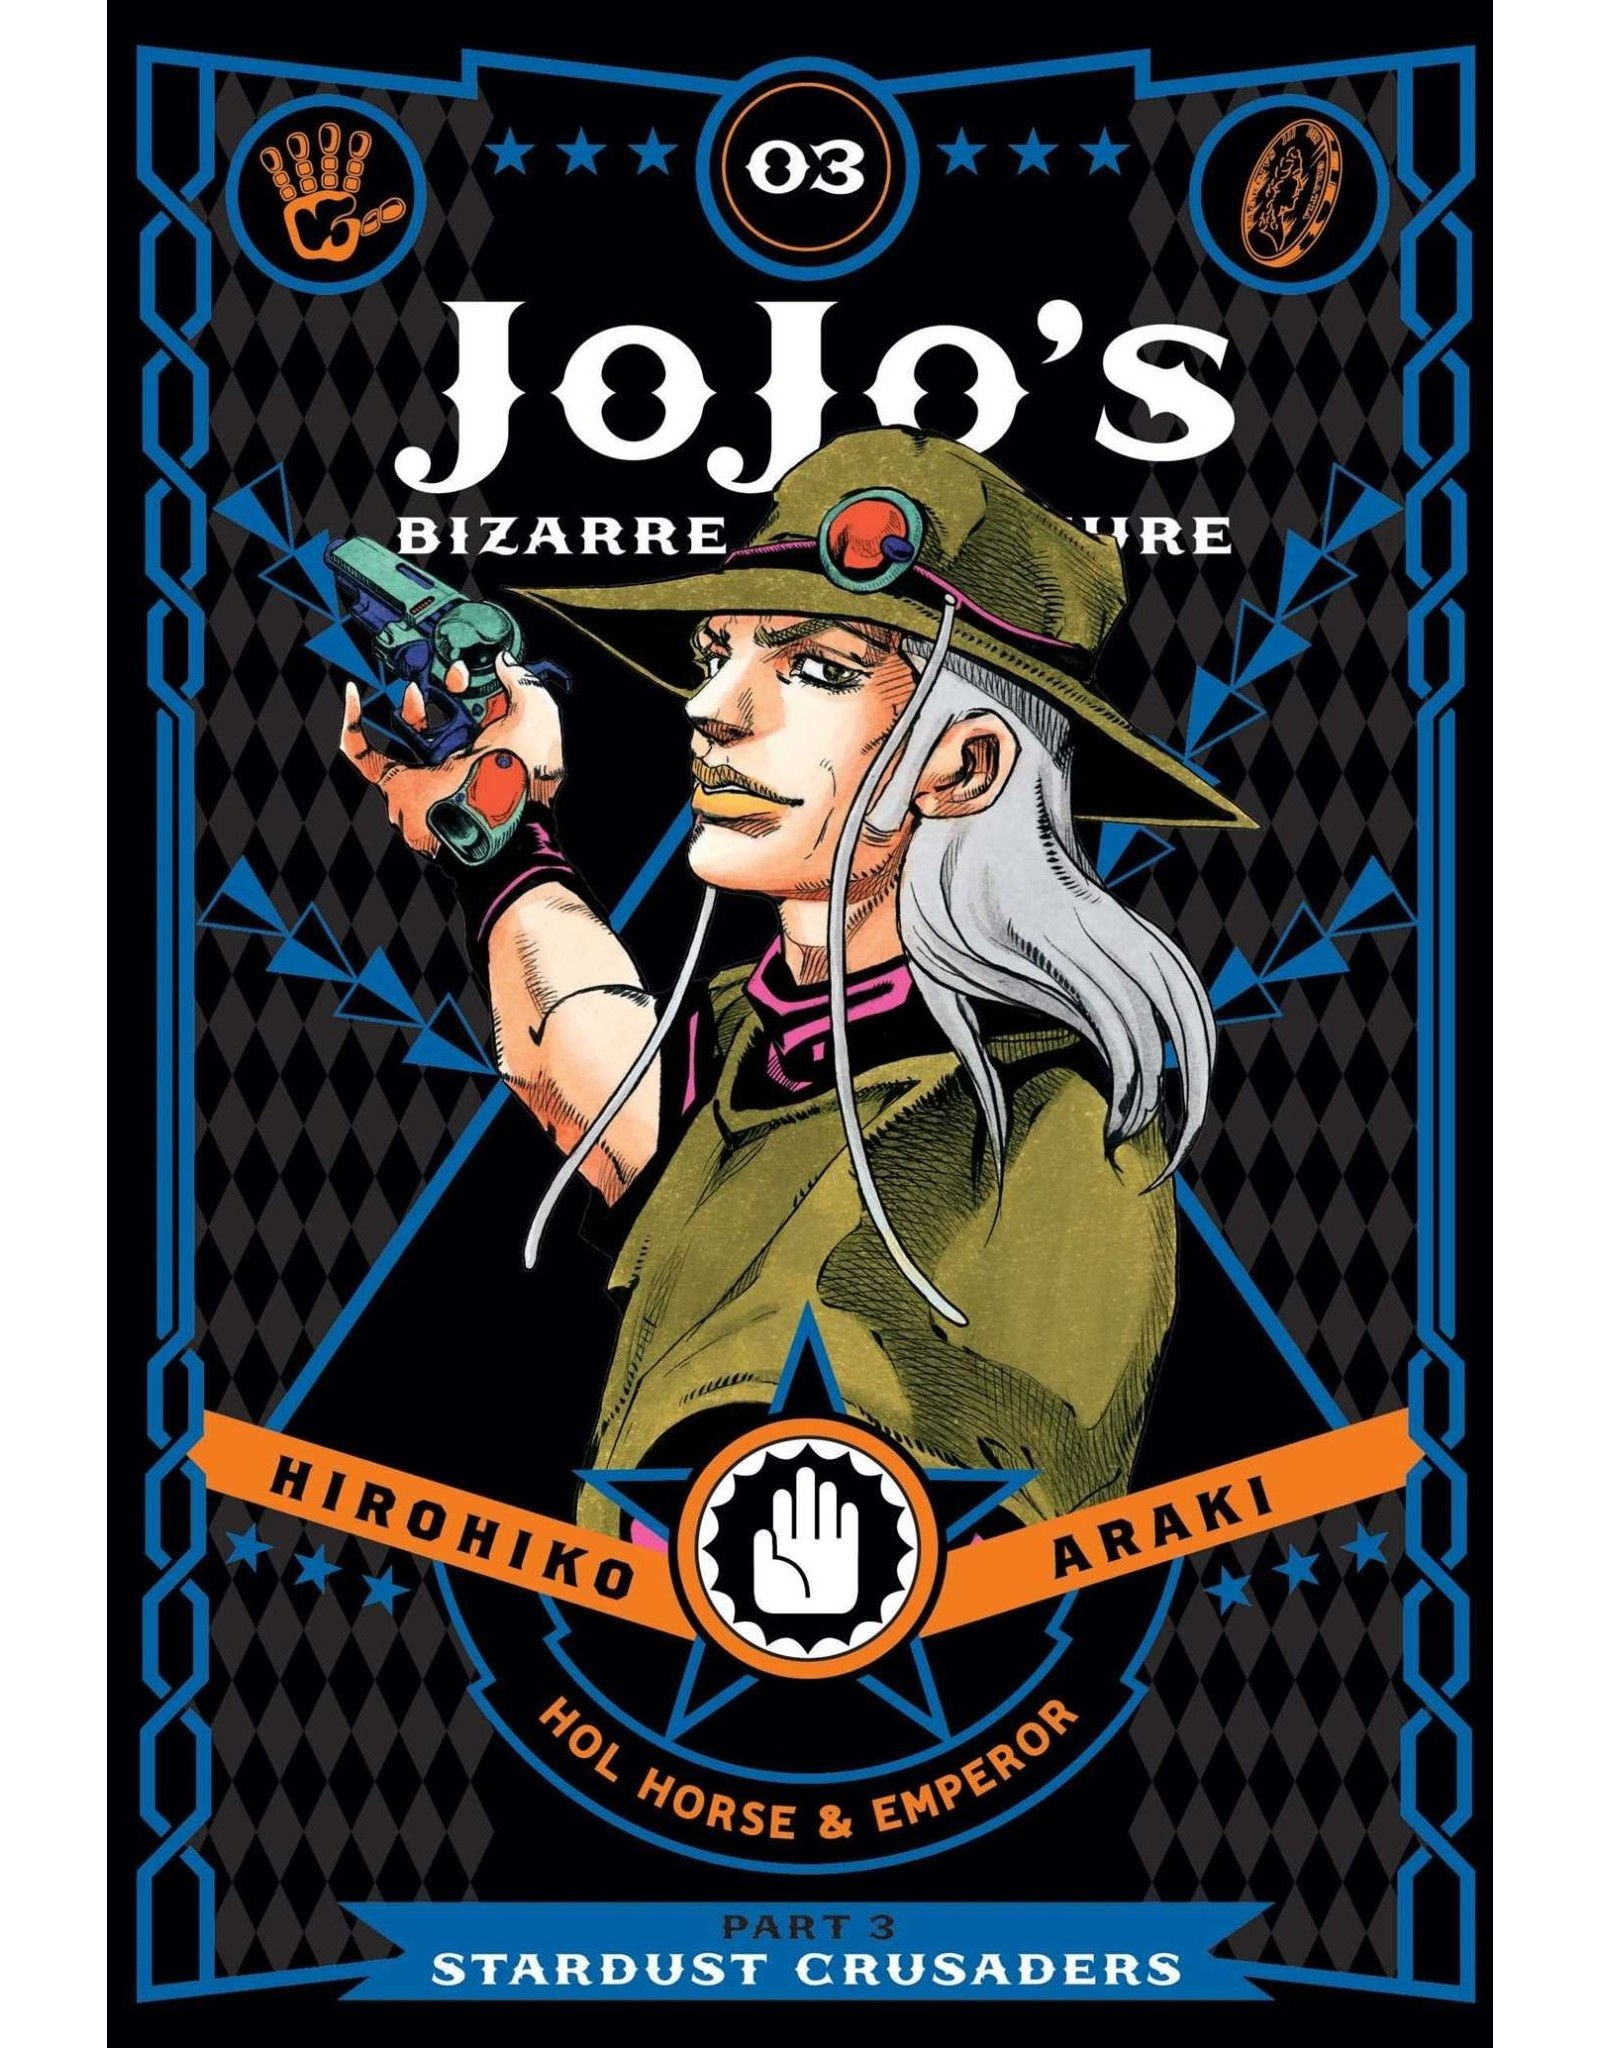 Jojo's Bizarre Adventure - Part 3: Stardust Crusaders - Volume 3 - Hardcover (English Version)